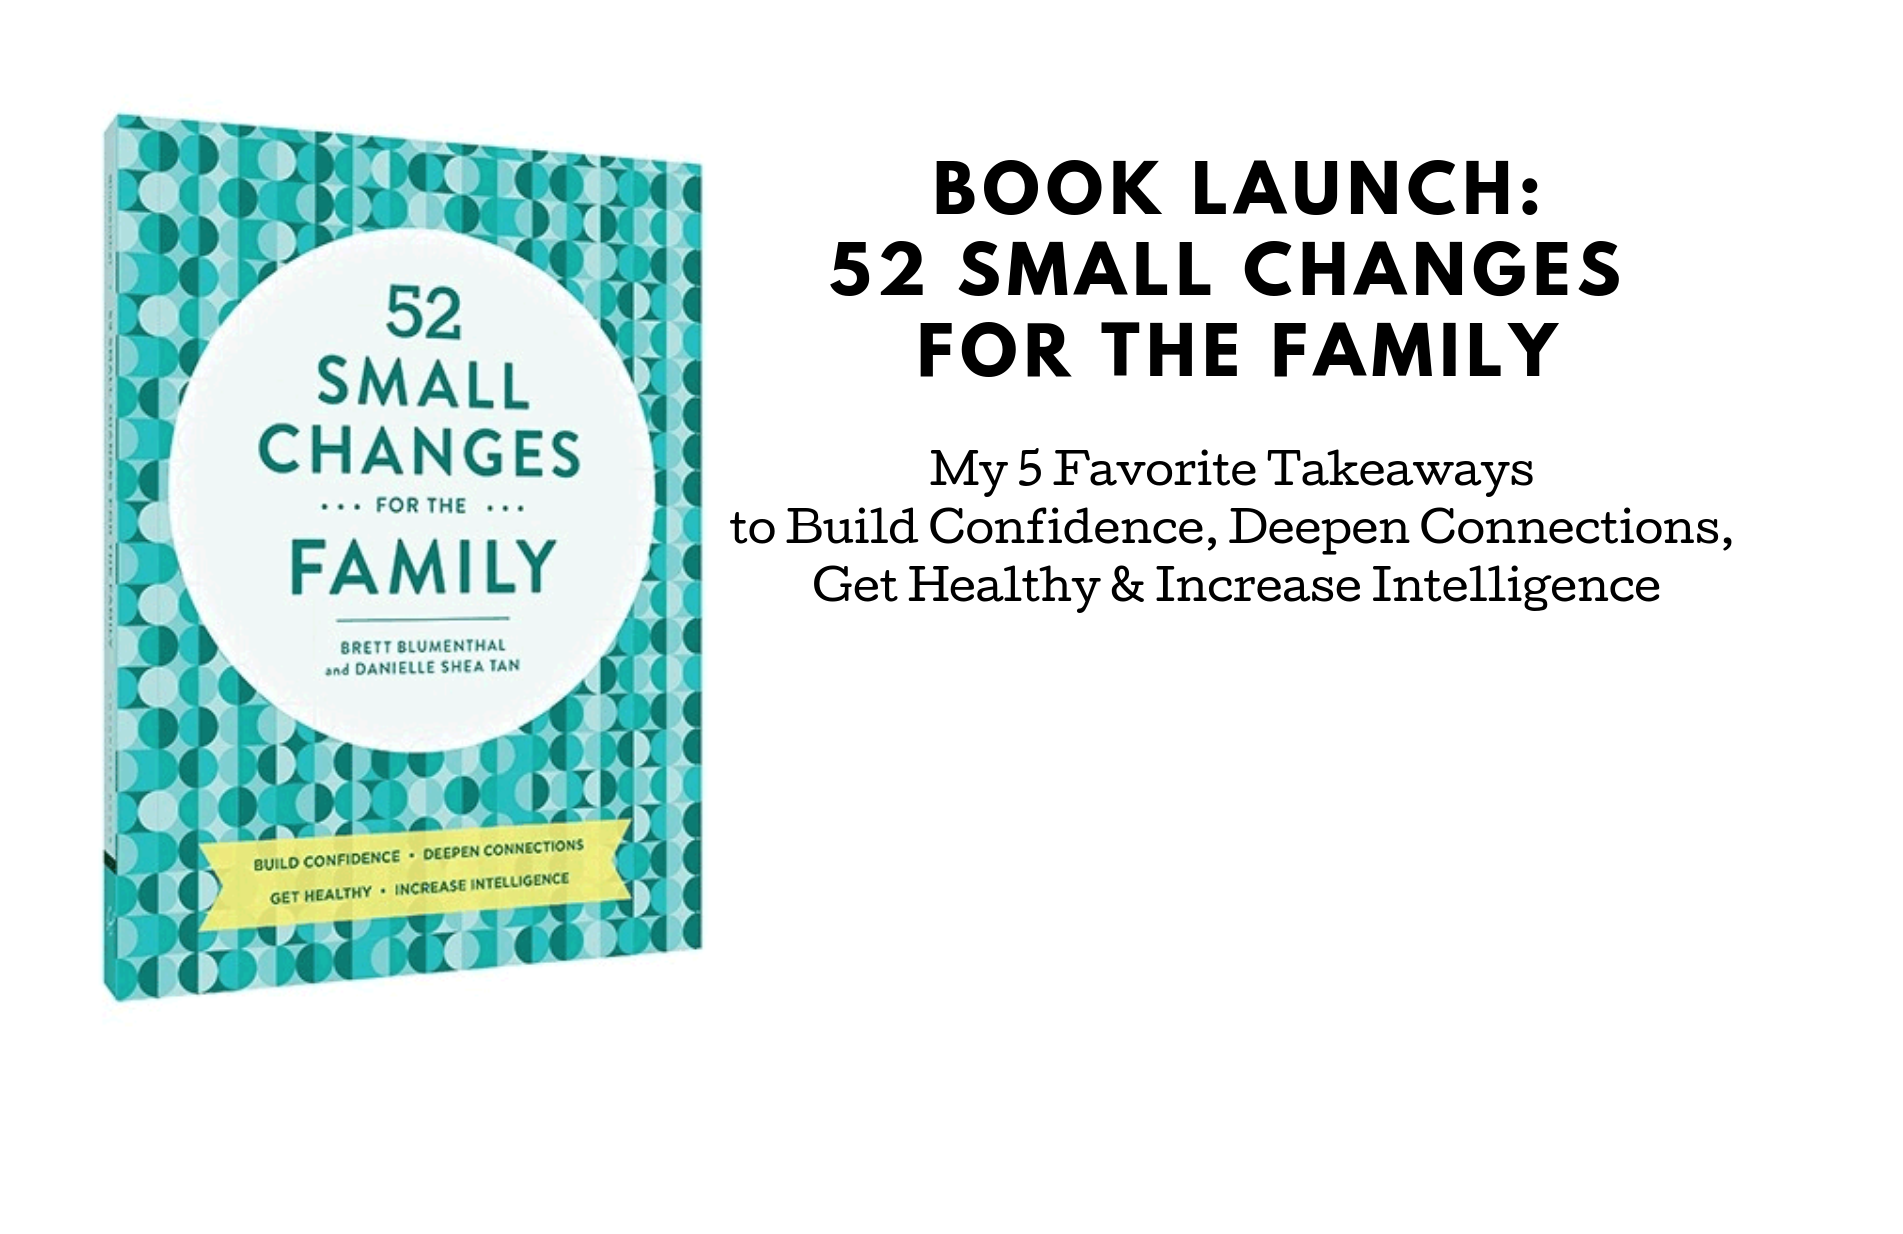 Book Launch! Five Favorite Tips from 52 Small Changes for the Family